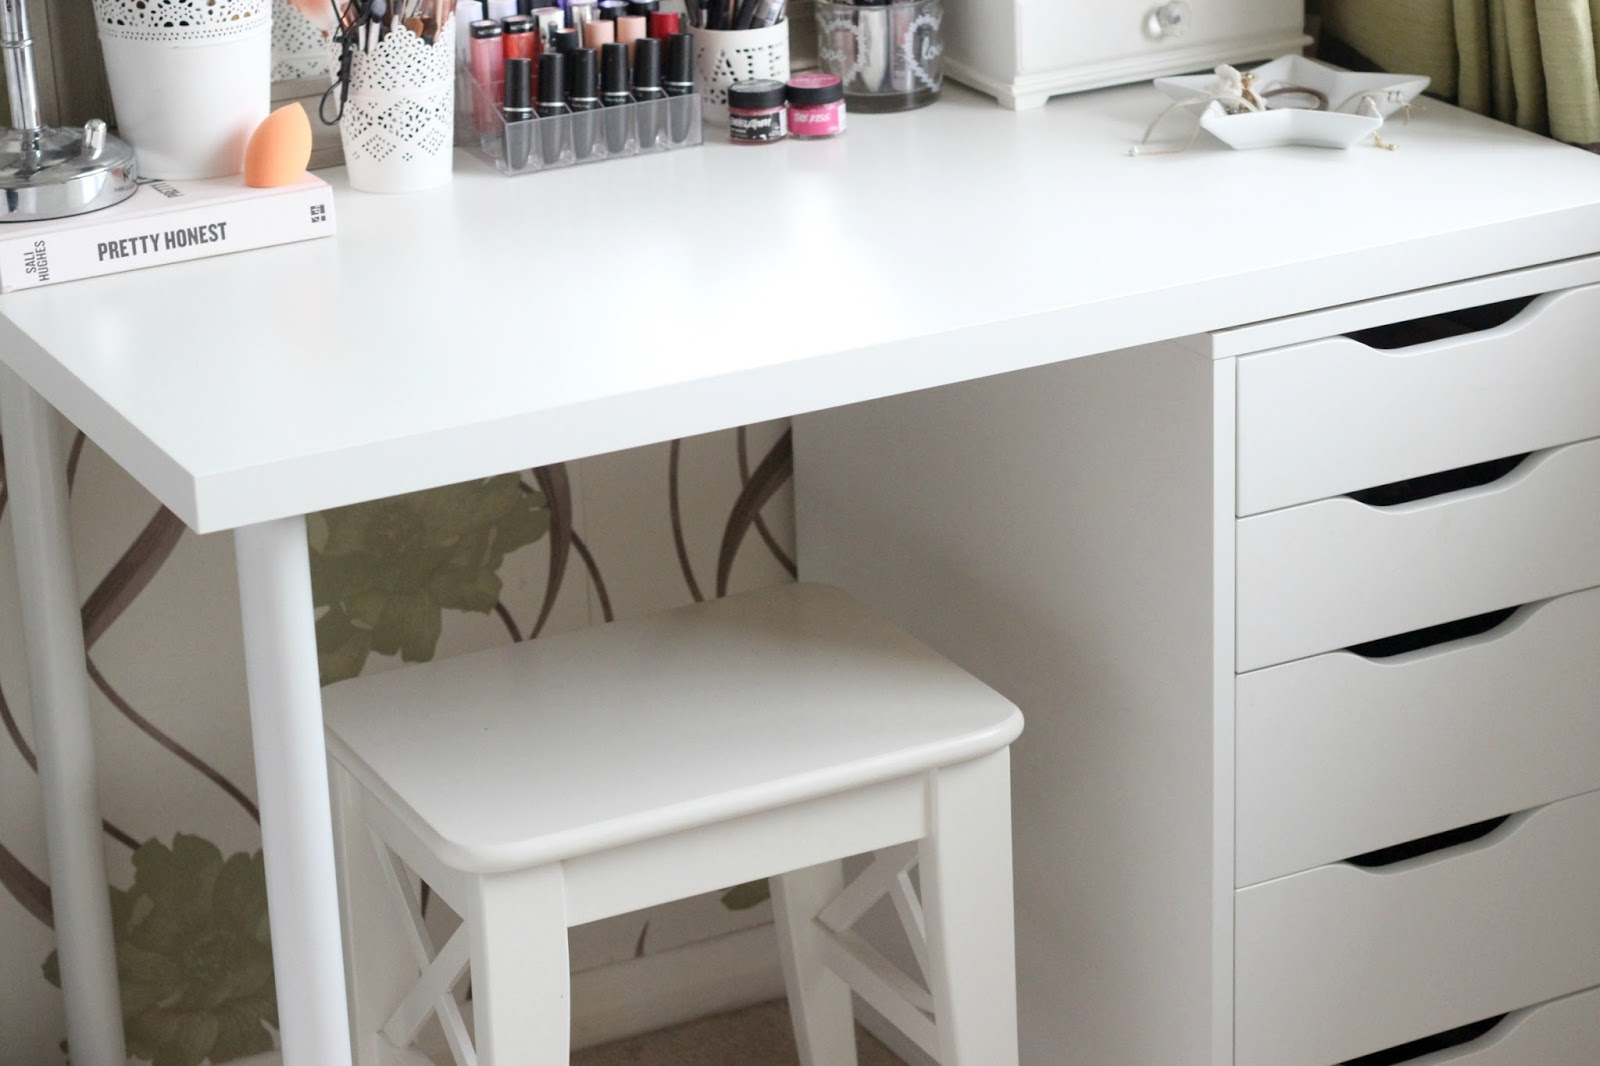 ikea vanity chair health mark pro inversion reviews diy and makeup storage it 39s kt